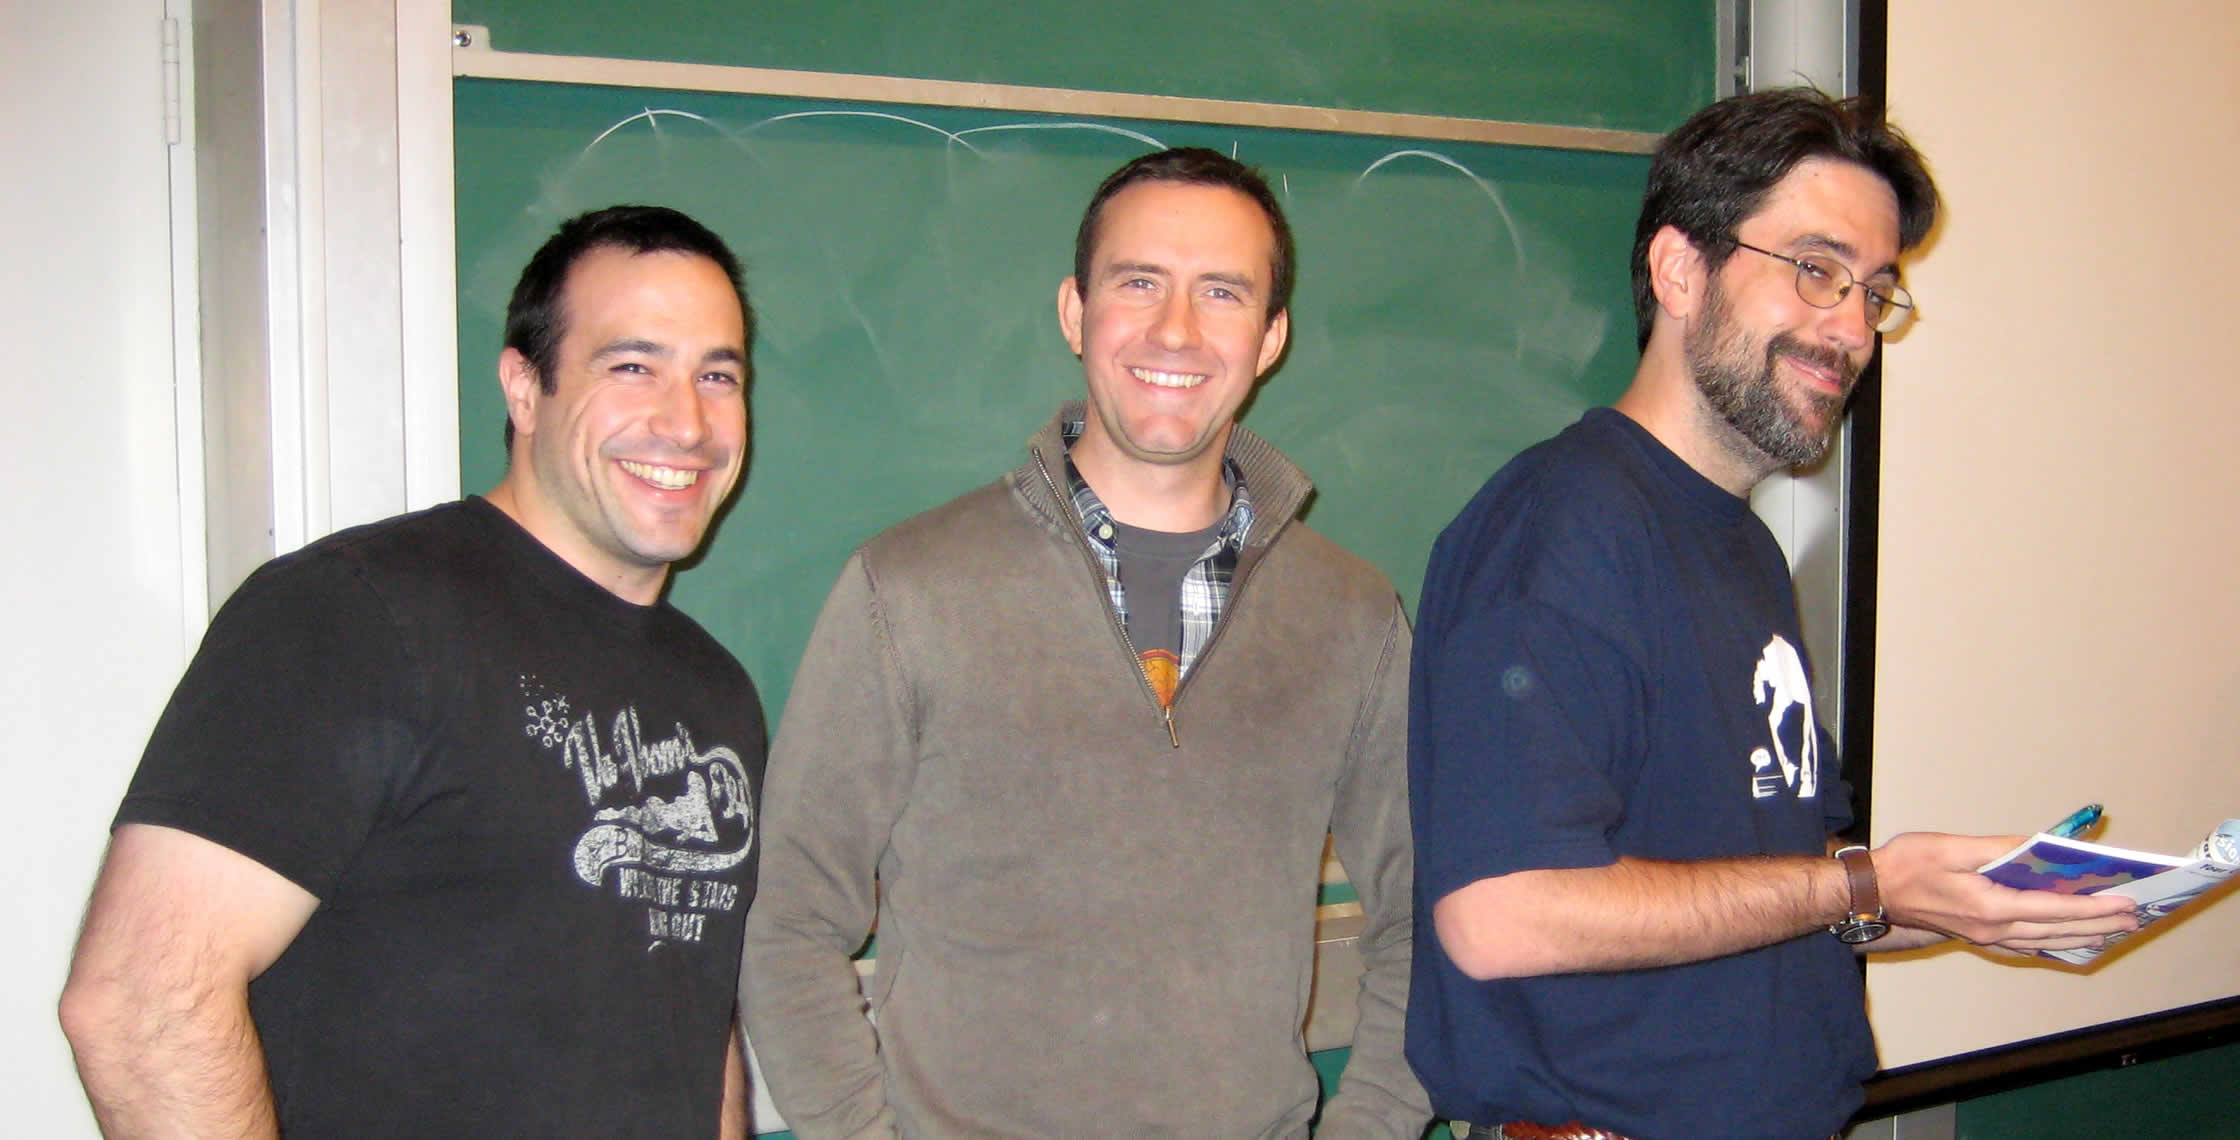 Ben Nadel at the New York ColdFusion User Group (Feb. 2008) with: Peter Bell and Ray Camden